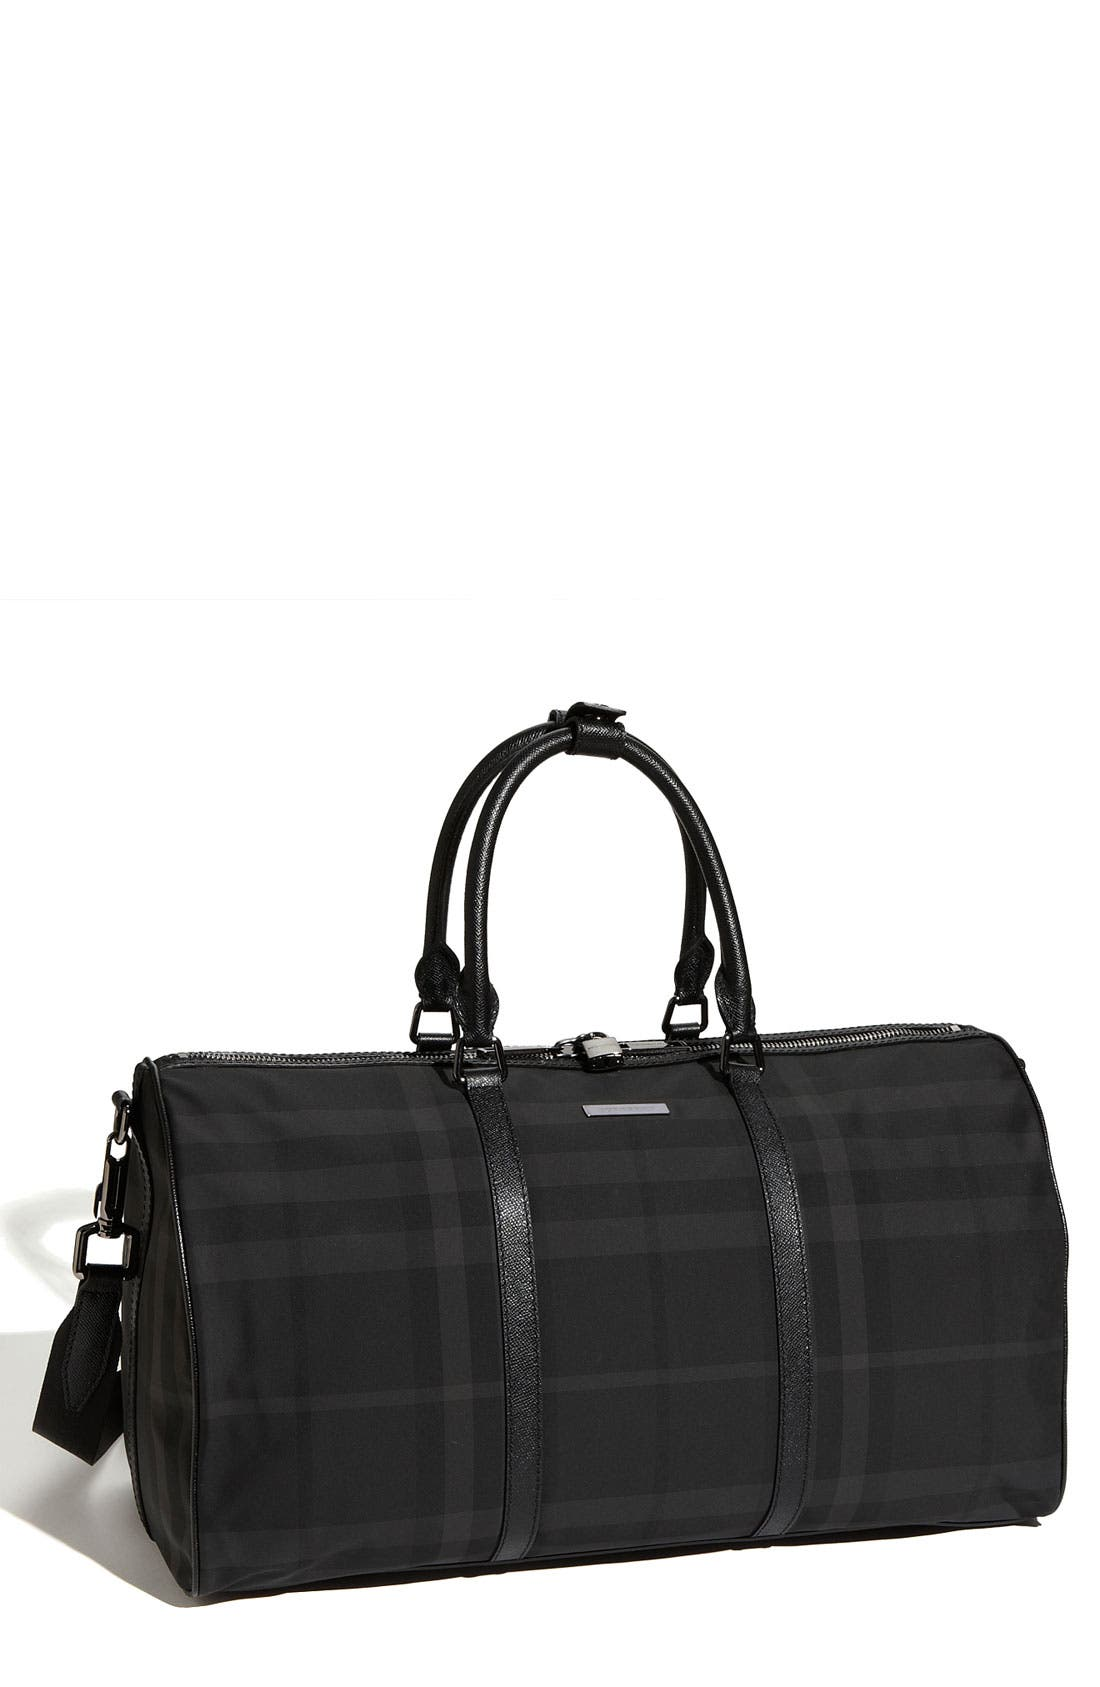 Alternate Image 1 Selected - Burberry Duffel Bag